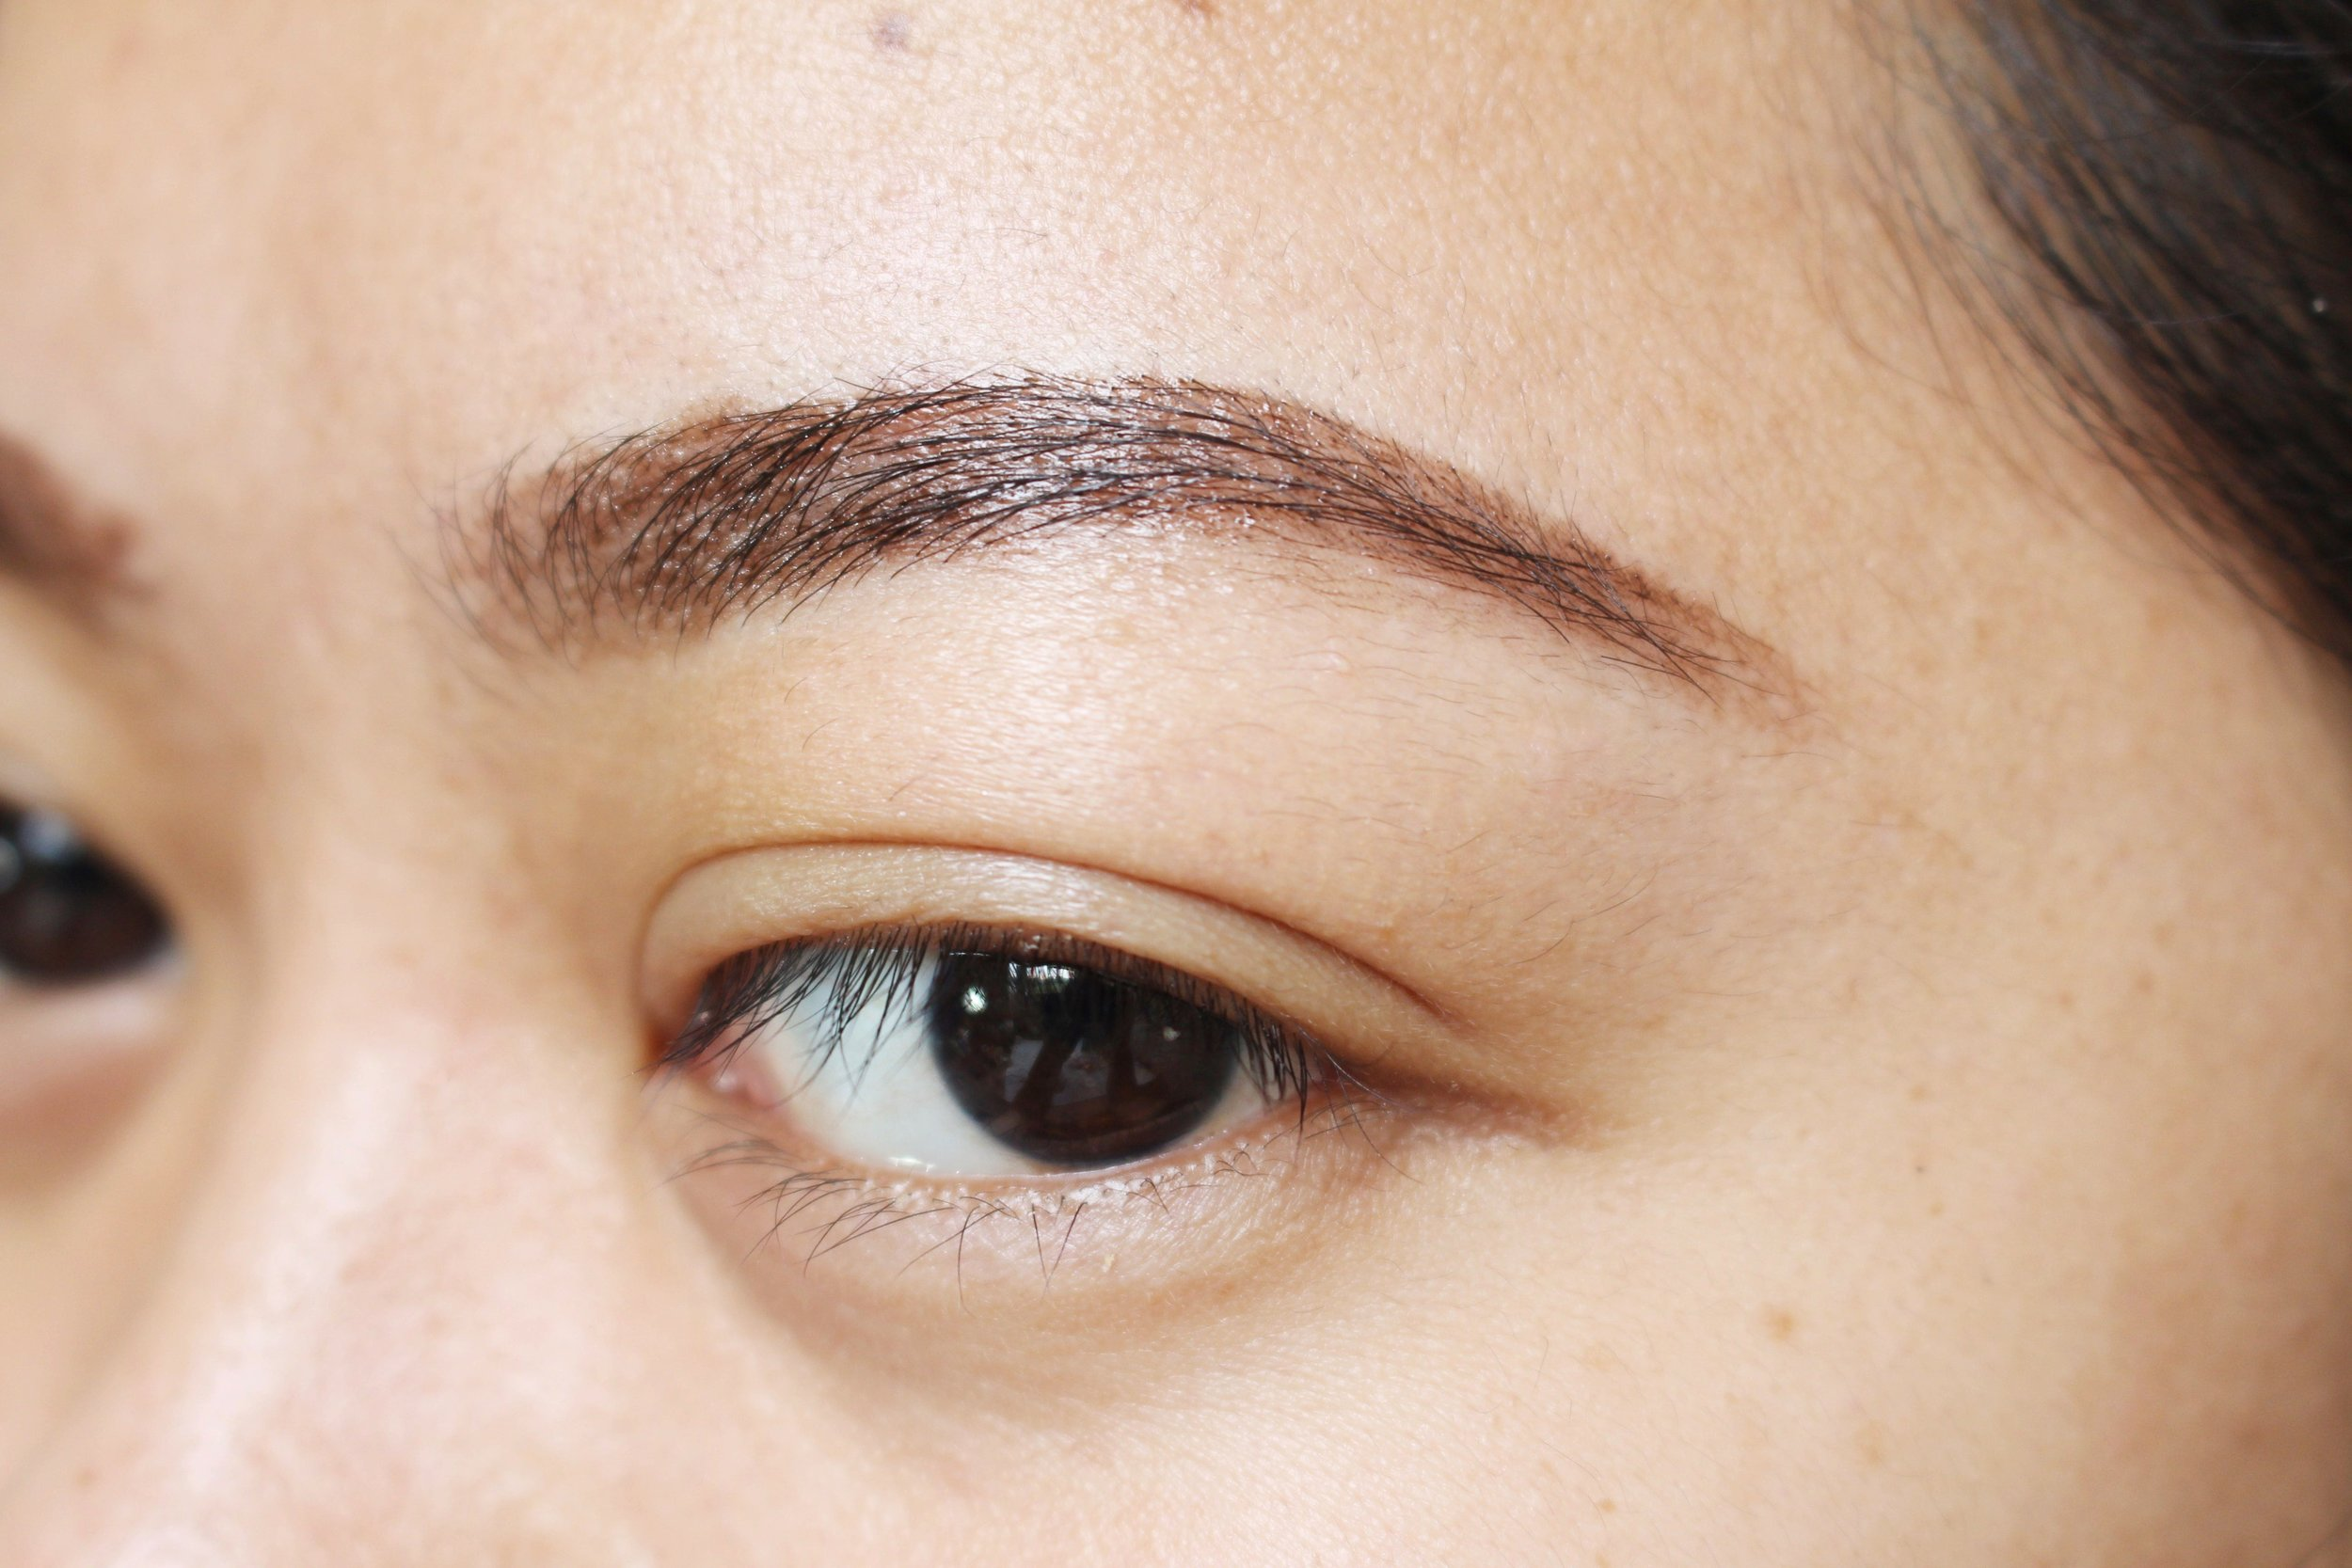 This is what our DIY browcara looks like! Love the ease of application and how it made the kilay so organized. We used an angled brow brush to apply it but you can also use a mini spoolie if you have a spare. You can store this in an empty mascara tube if you have one (usually sourced from beauty supply or packaging stores)